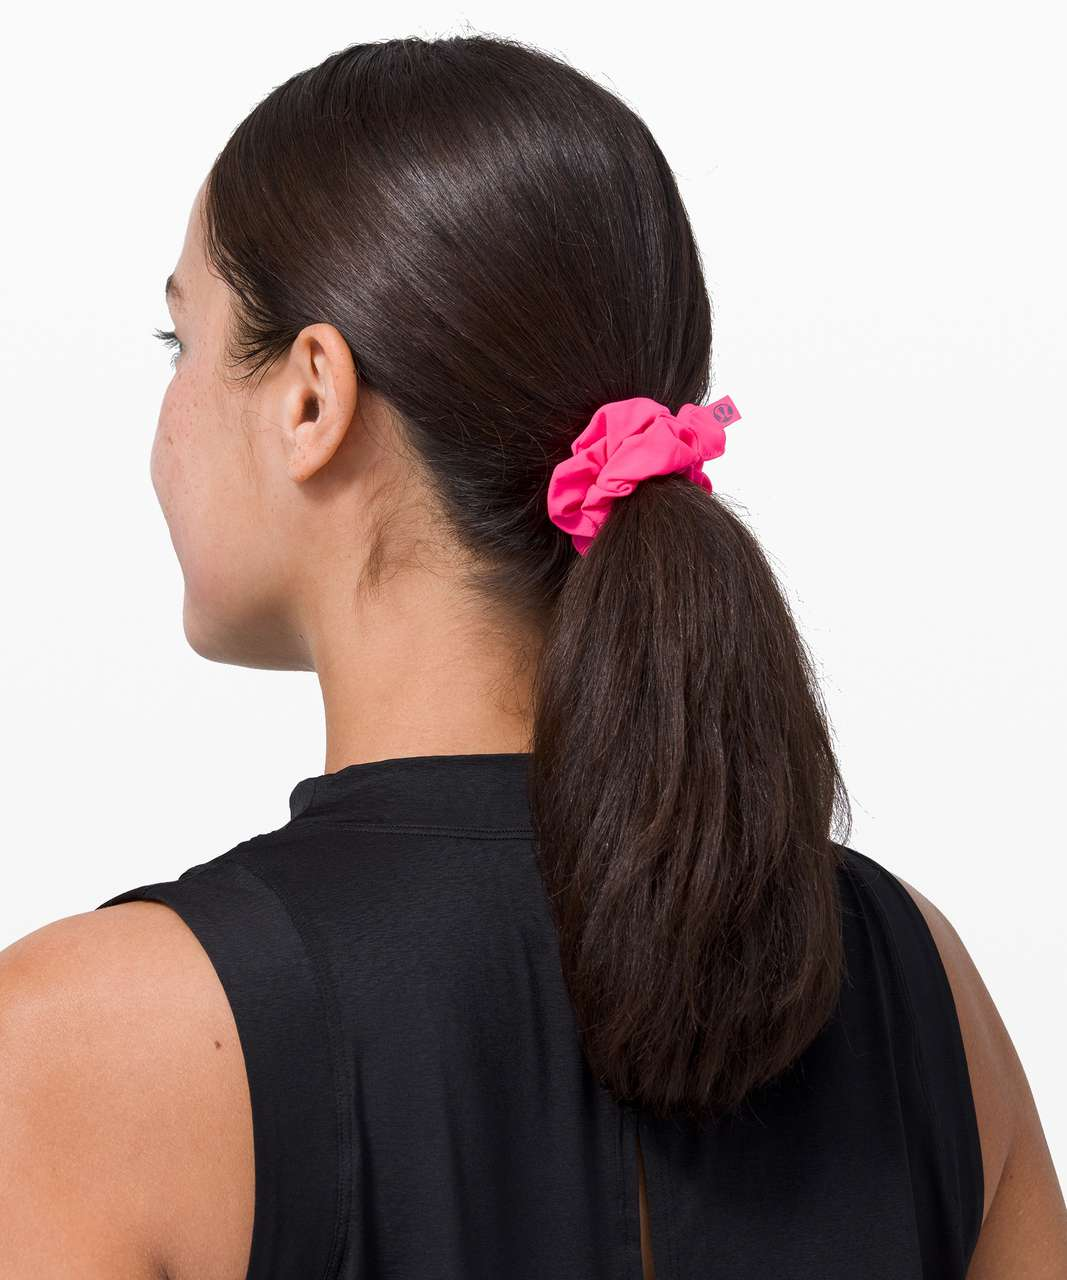 Lululemon Uplifting Scrunchie - Pink Highlight